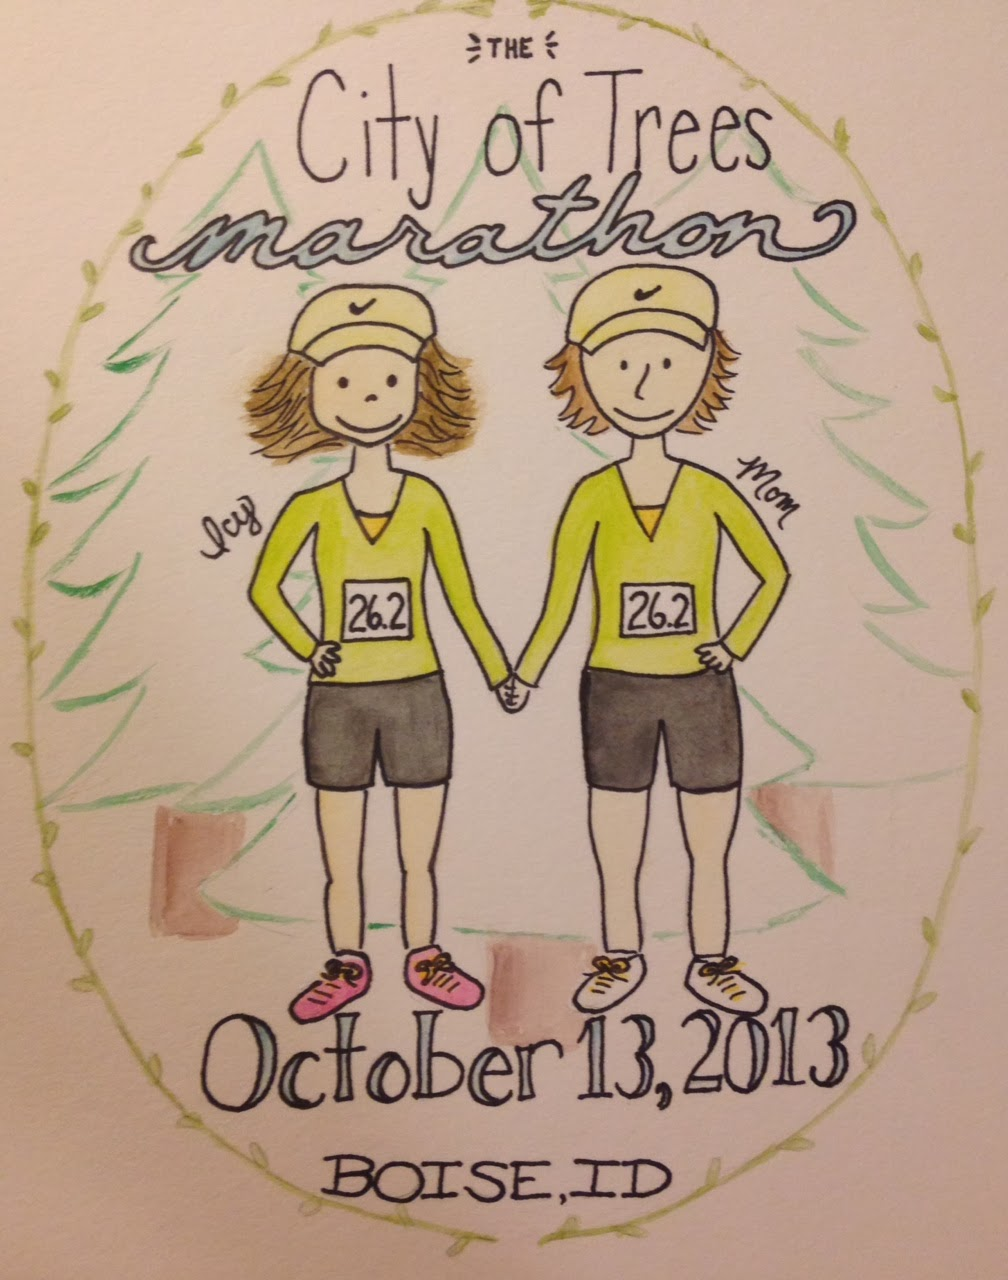 City of Trees Marathon Portrait